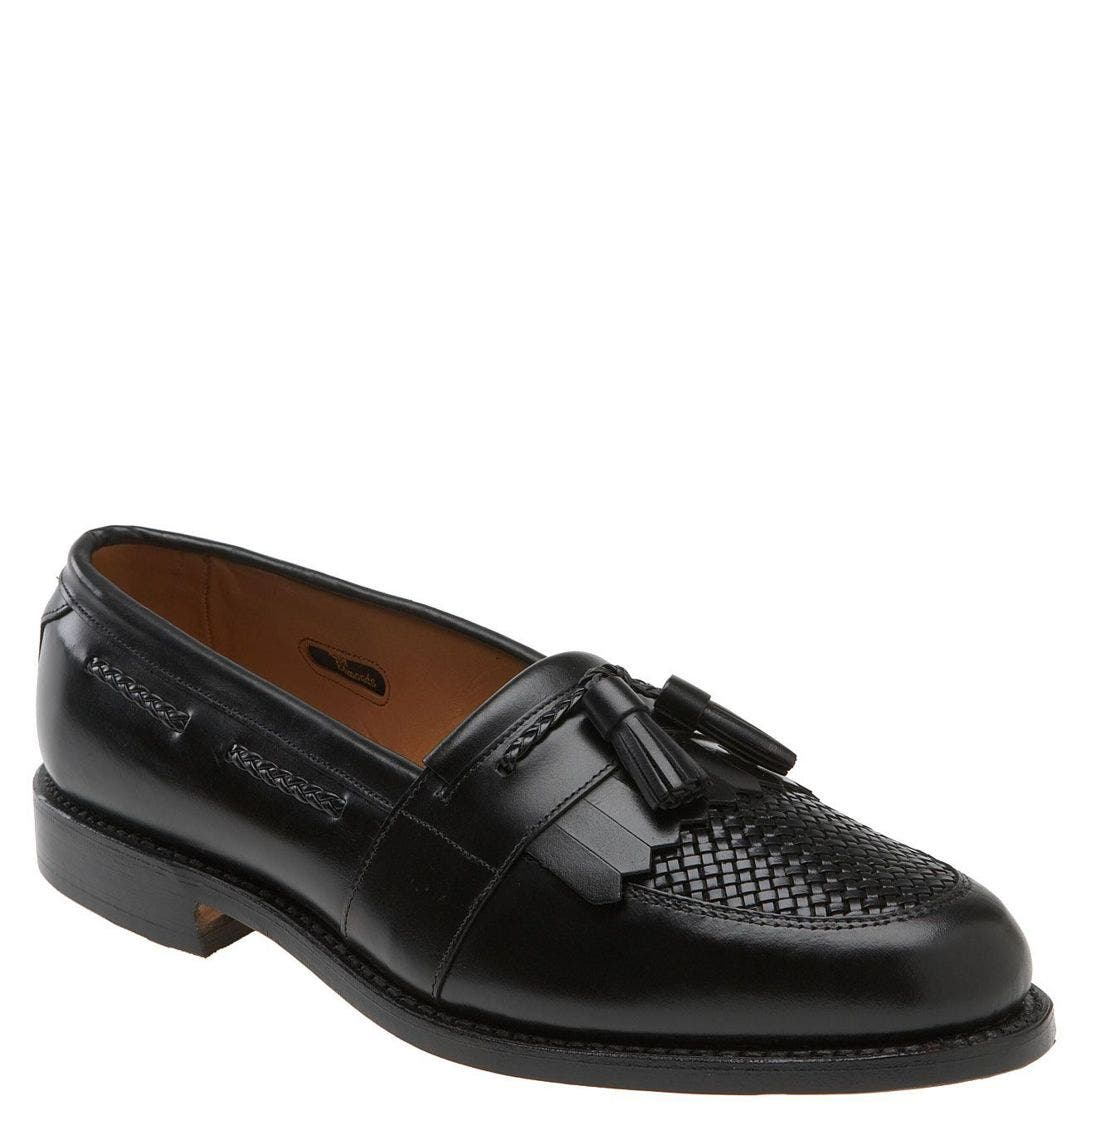 Main Image - Allen Edmonds 'Cody' Tassel Loafer (Men)